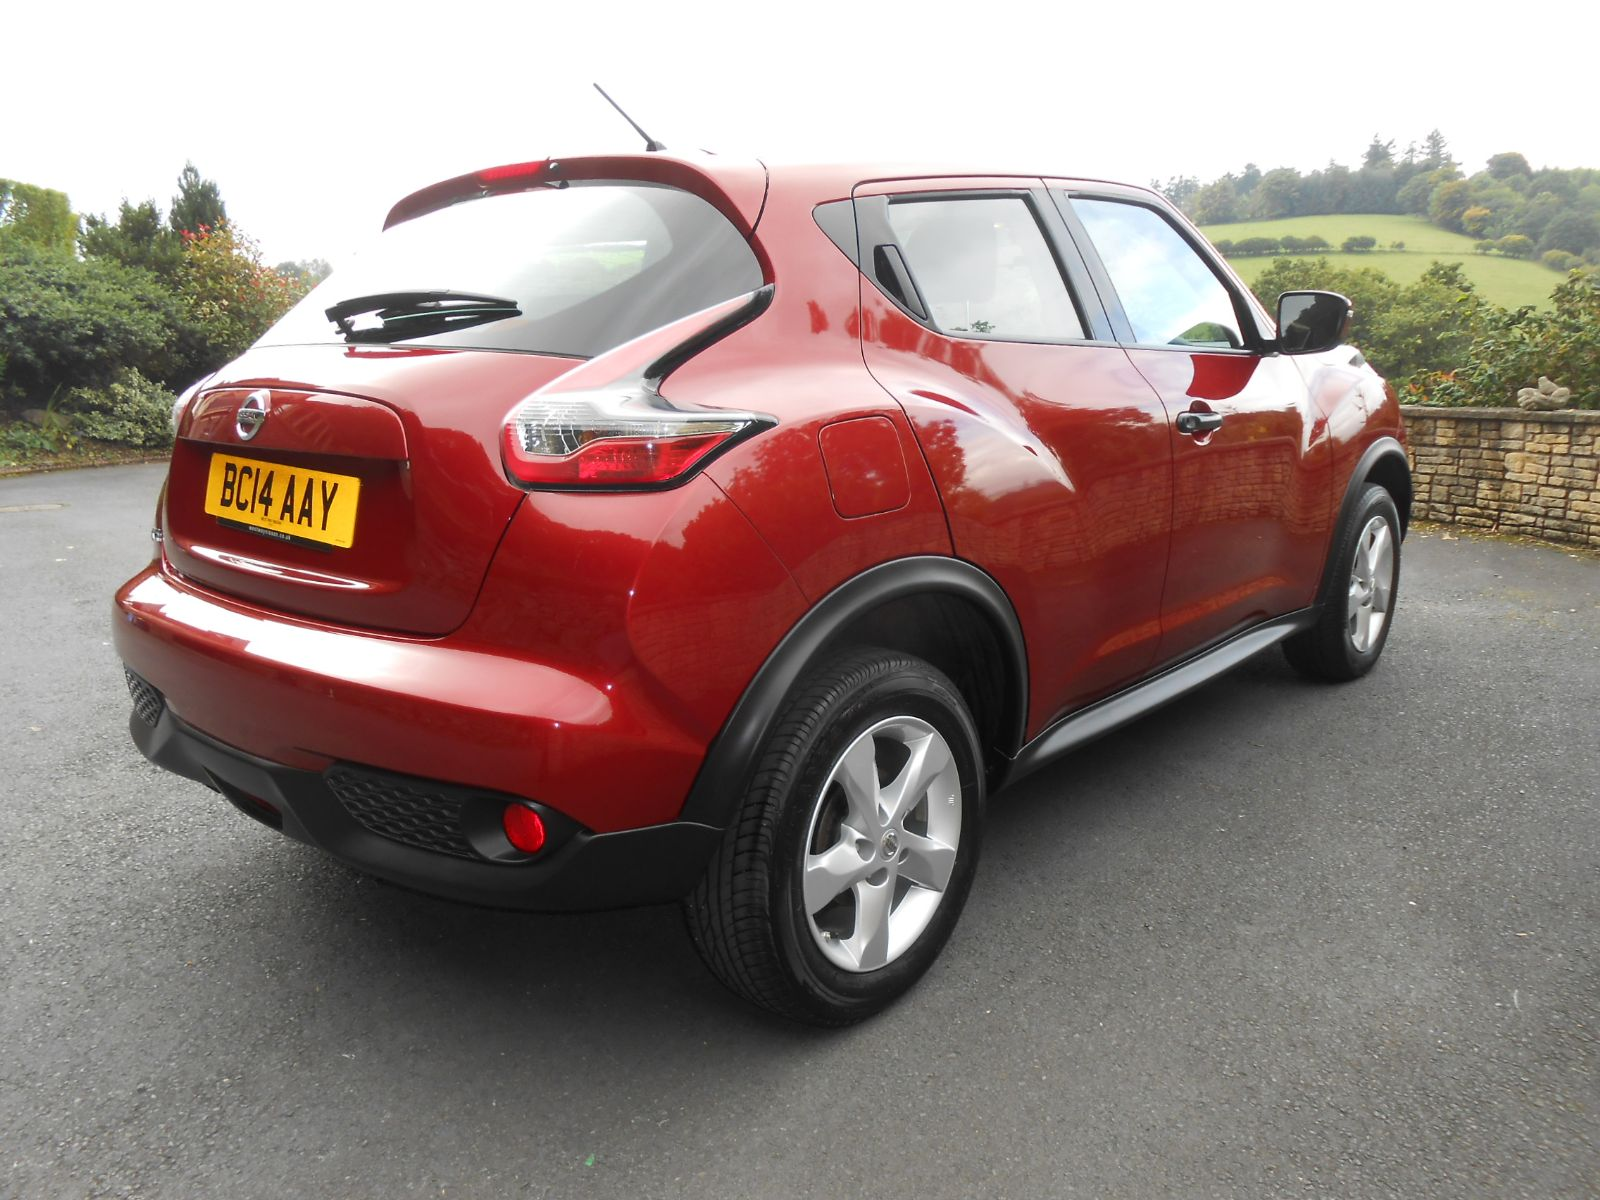 nissan juke 1 6 visia car for sale llanidloes powys mid wales kevin jones cars used cars. Black Bedroom Furniture Sets. Home Design Ideas